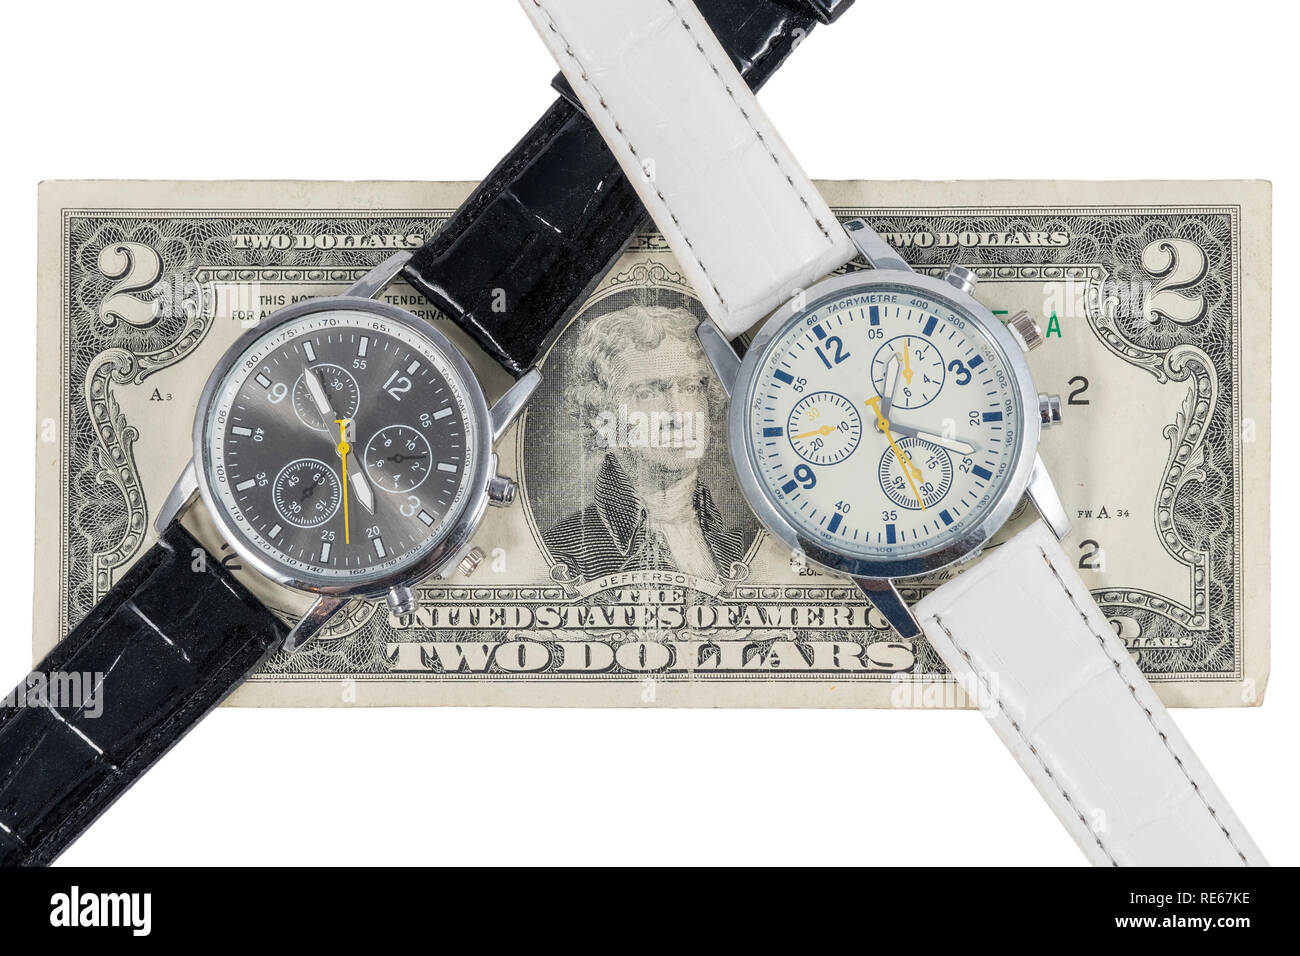 Two wristwatches showing different times on a two-dollar bill, isolated on a white background - Stock Image